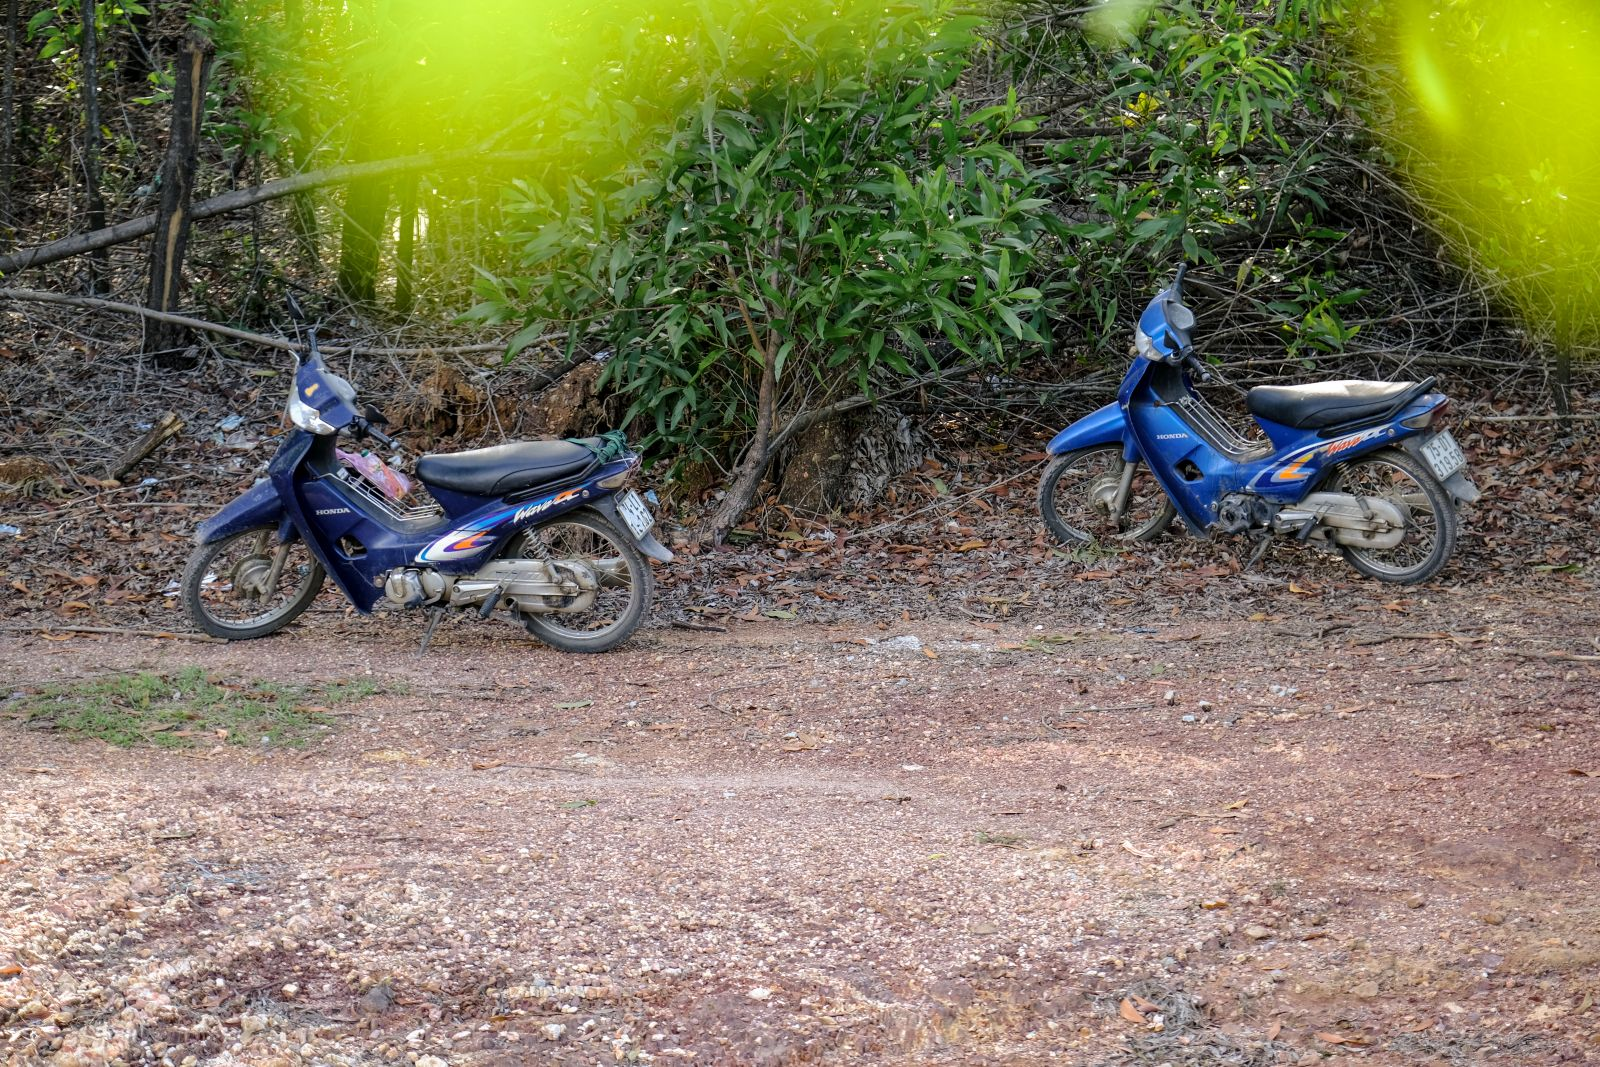 Local people's vehicles parked along the road as they went on to pick mushrooms